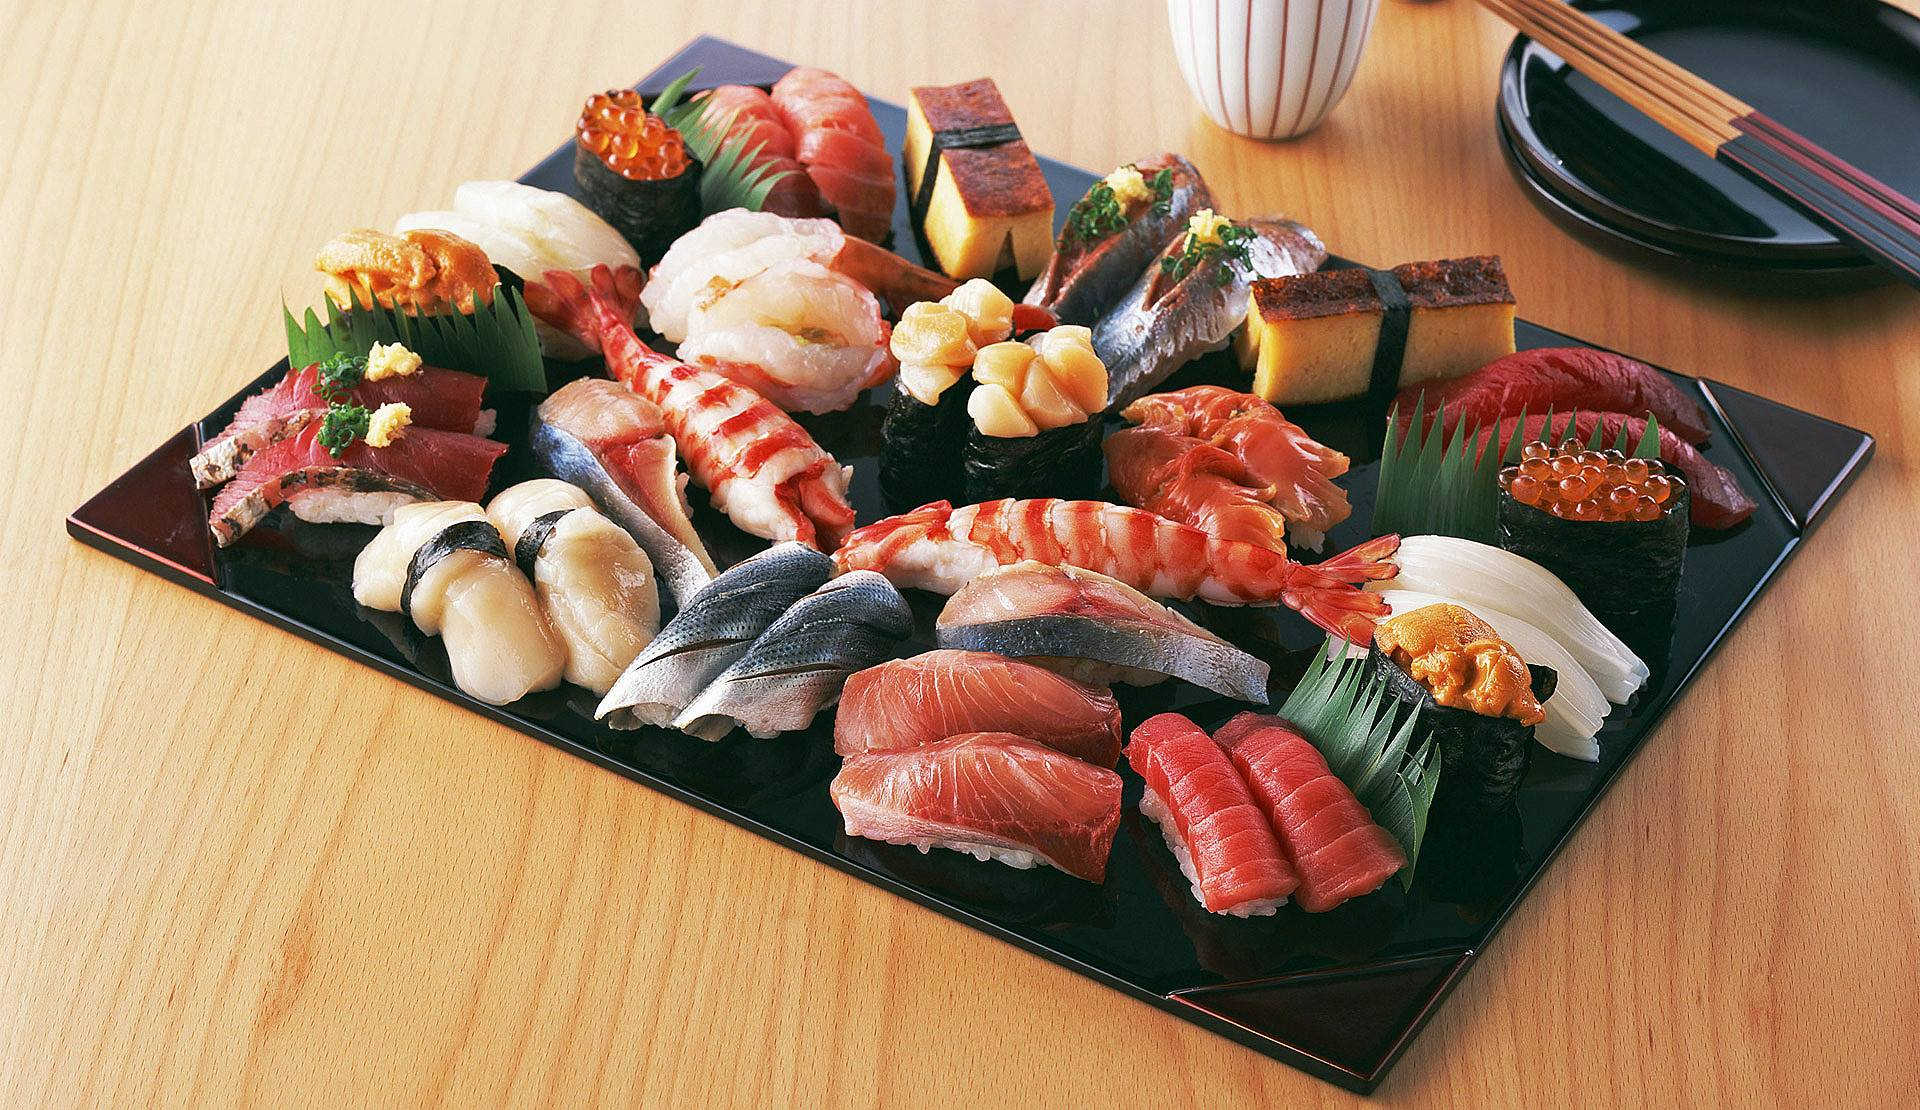 A sushi platter at a sushi restaurant in Sofia